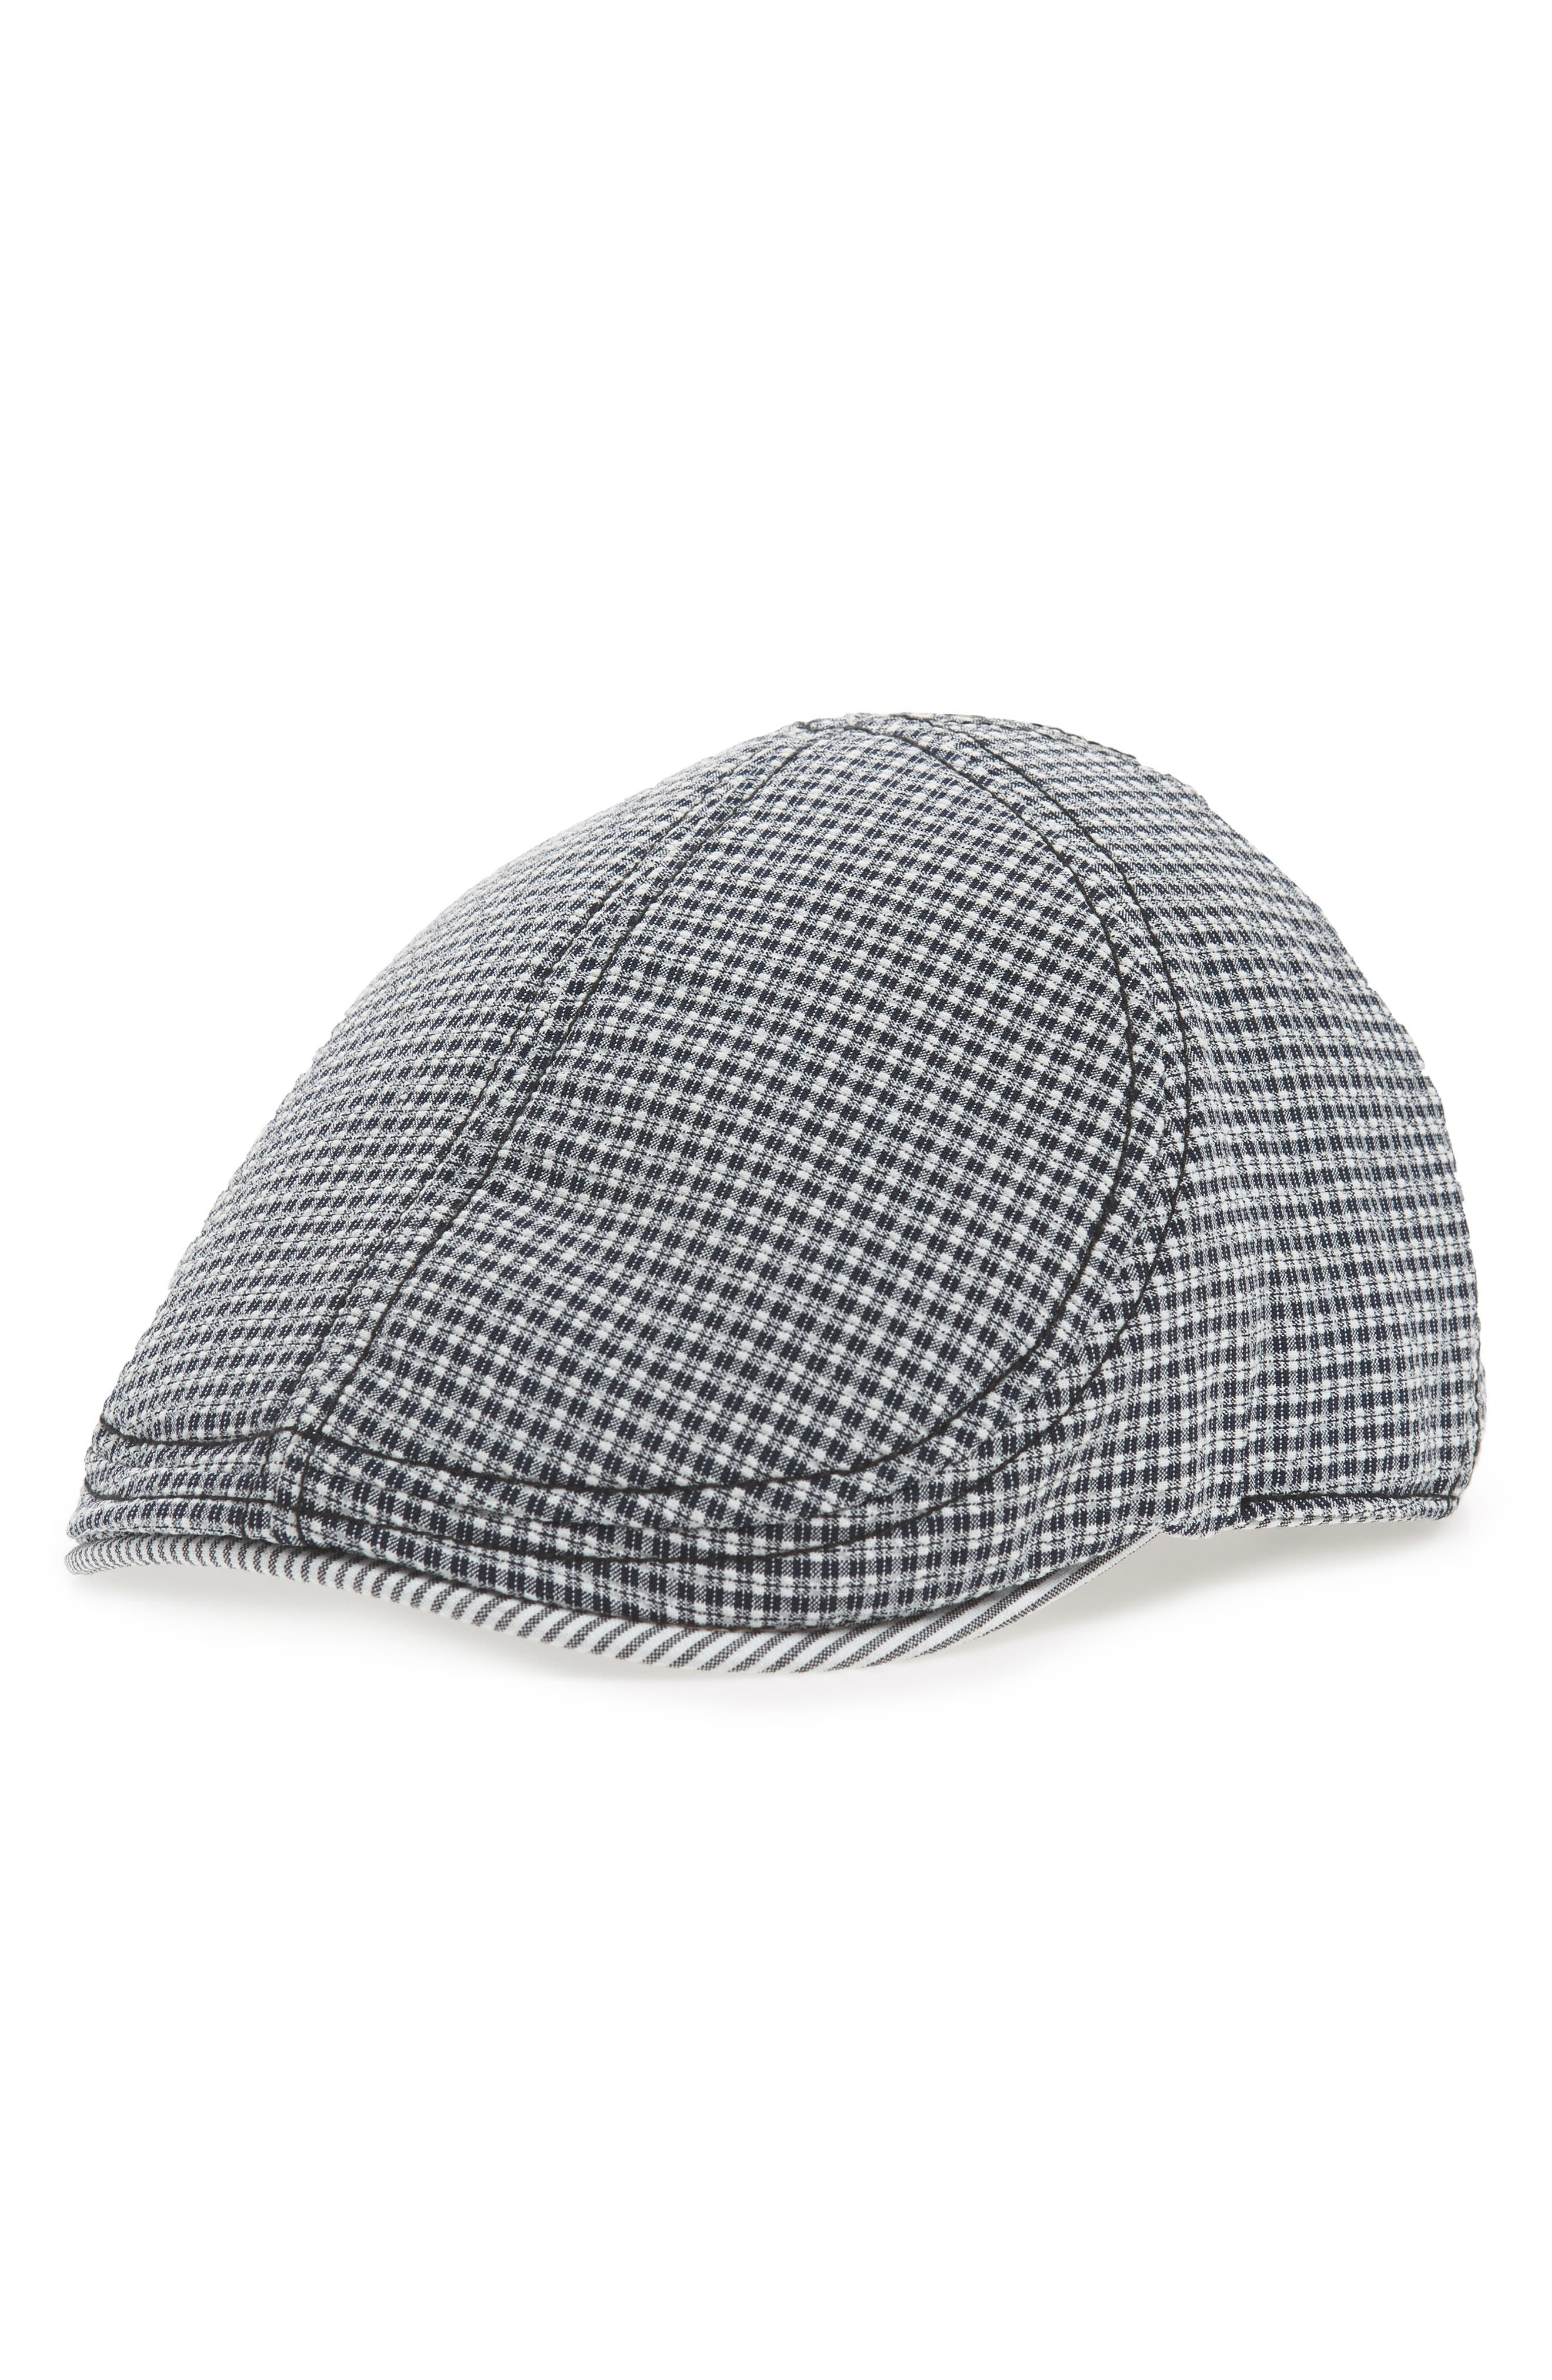 Goorin Brothers Fridays Driving Cap